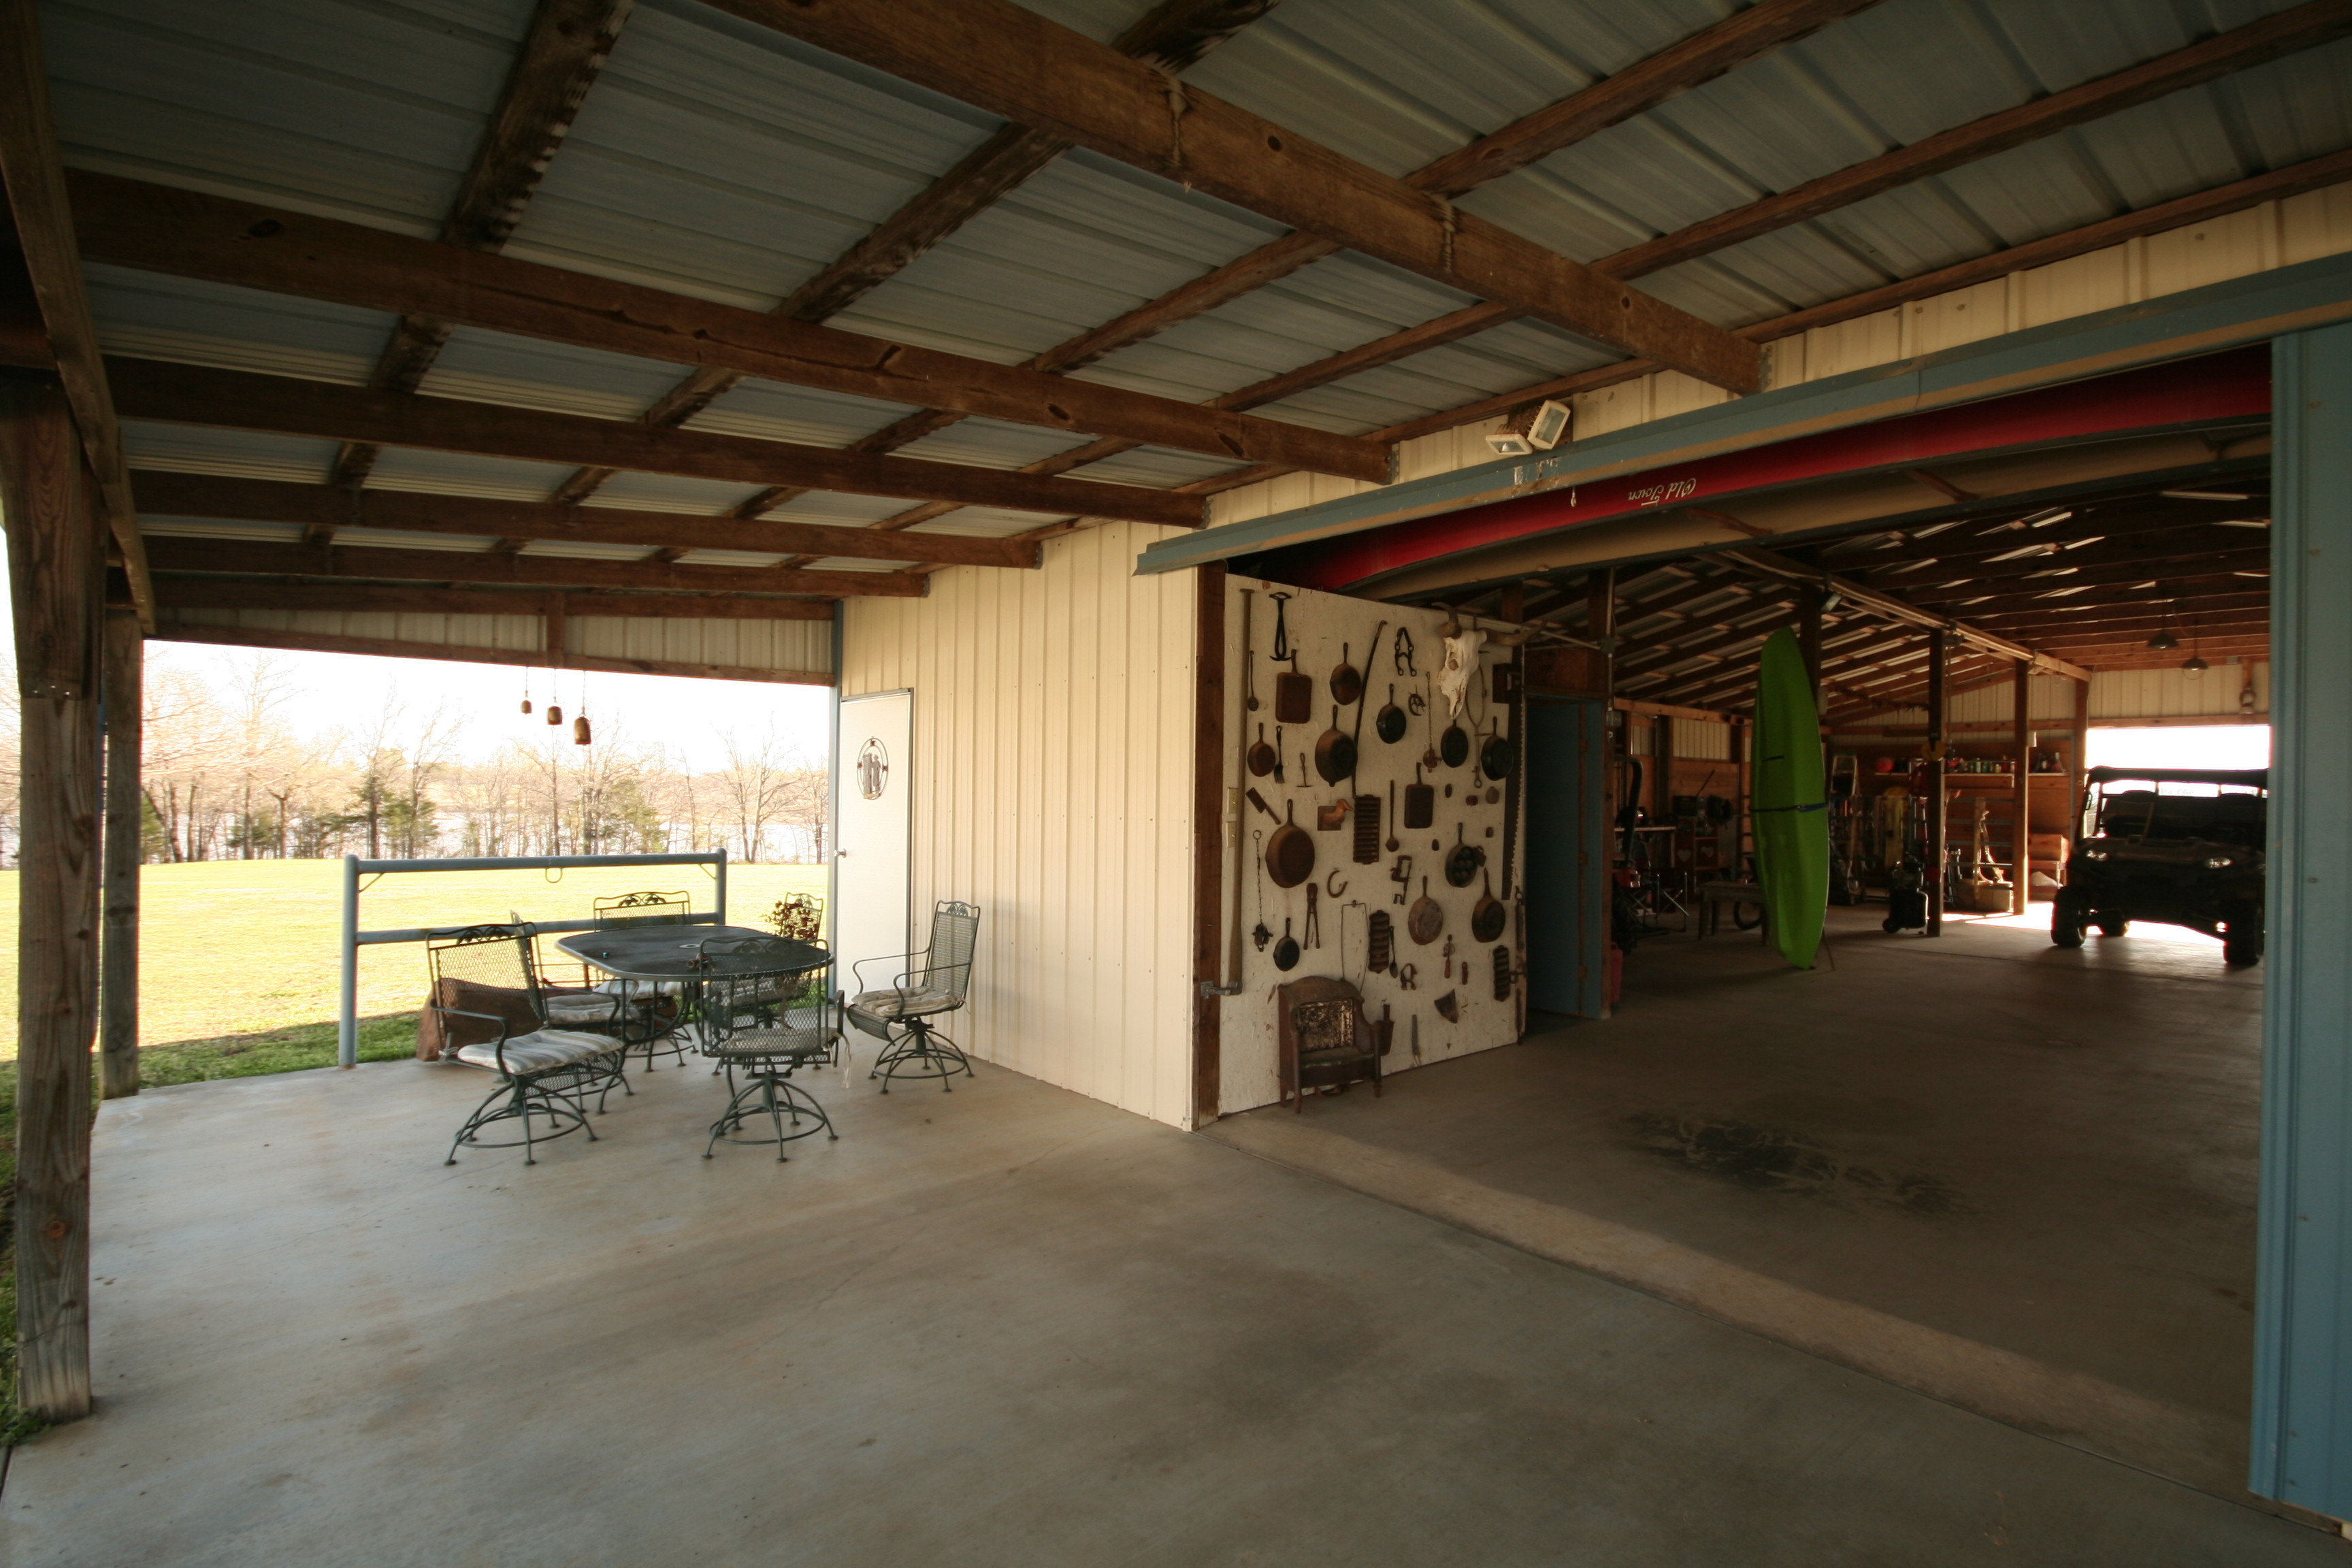 Entertain on the Covered Patio at the Barn